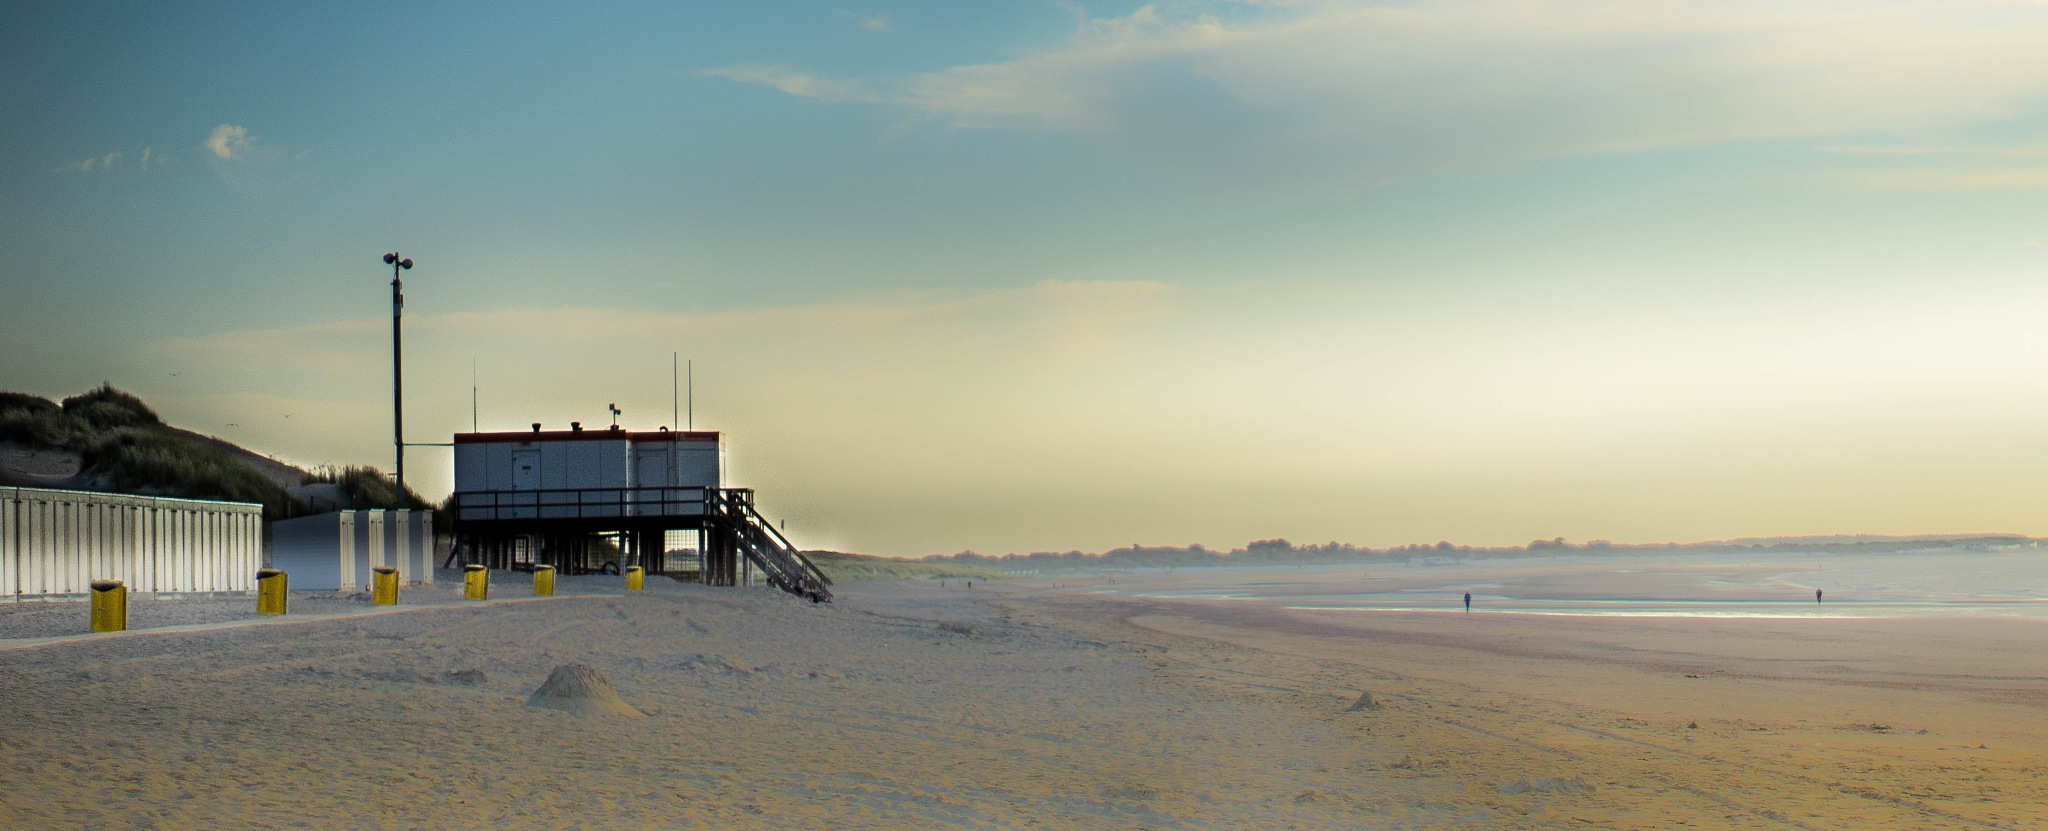 Holland: north sea and beach at Ouddorp by Roy Maas